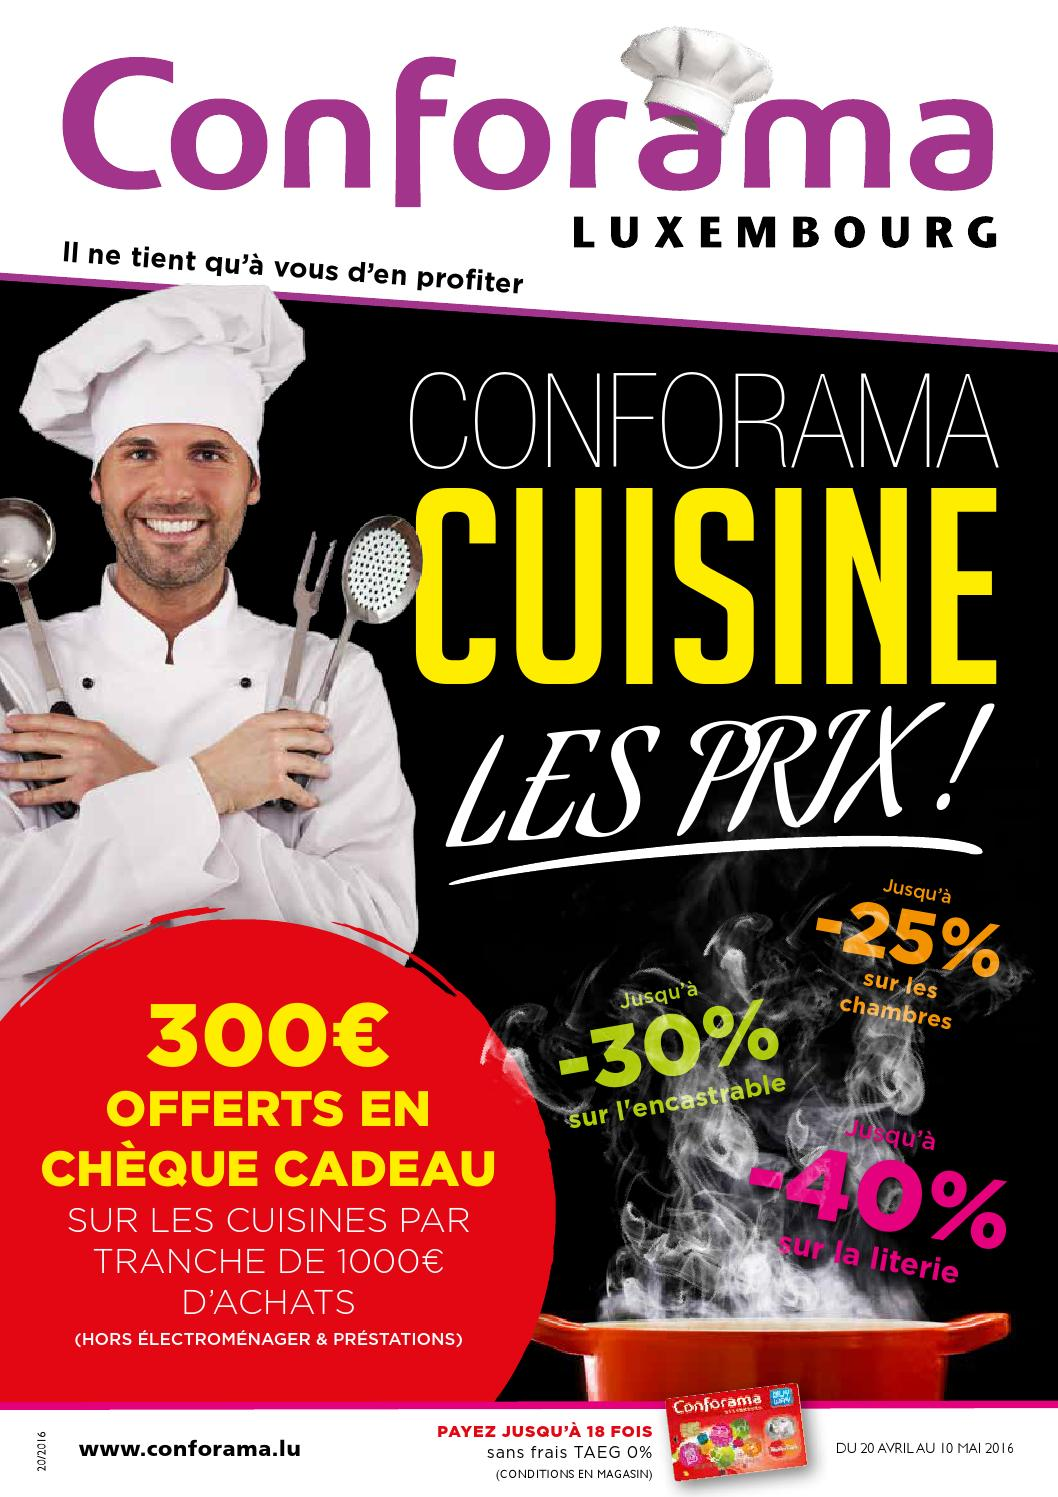 Doc 20 Conforama Cuisine Les Prix By Conforama Luxembourg